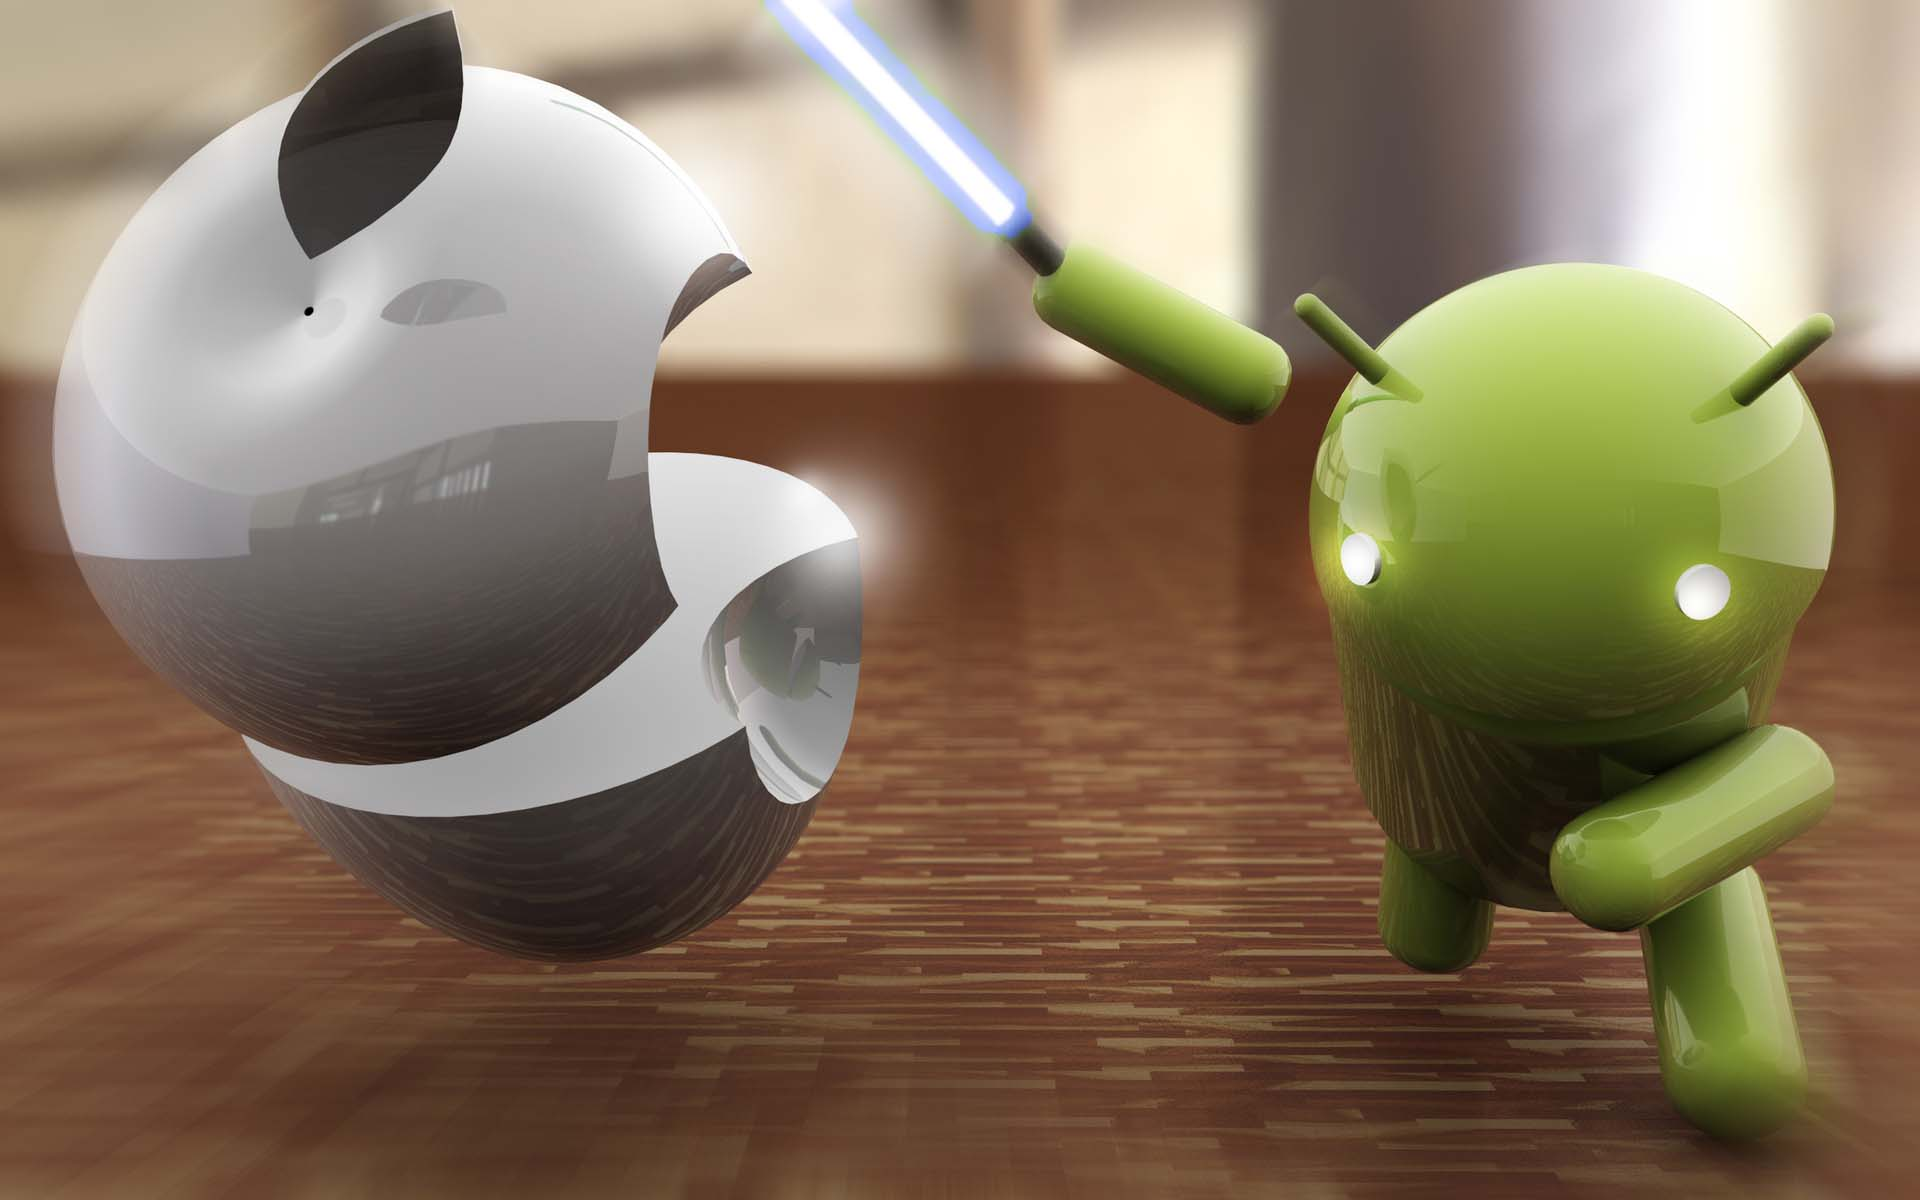 Wallpaper-apple-vs-android-7